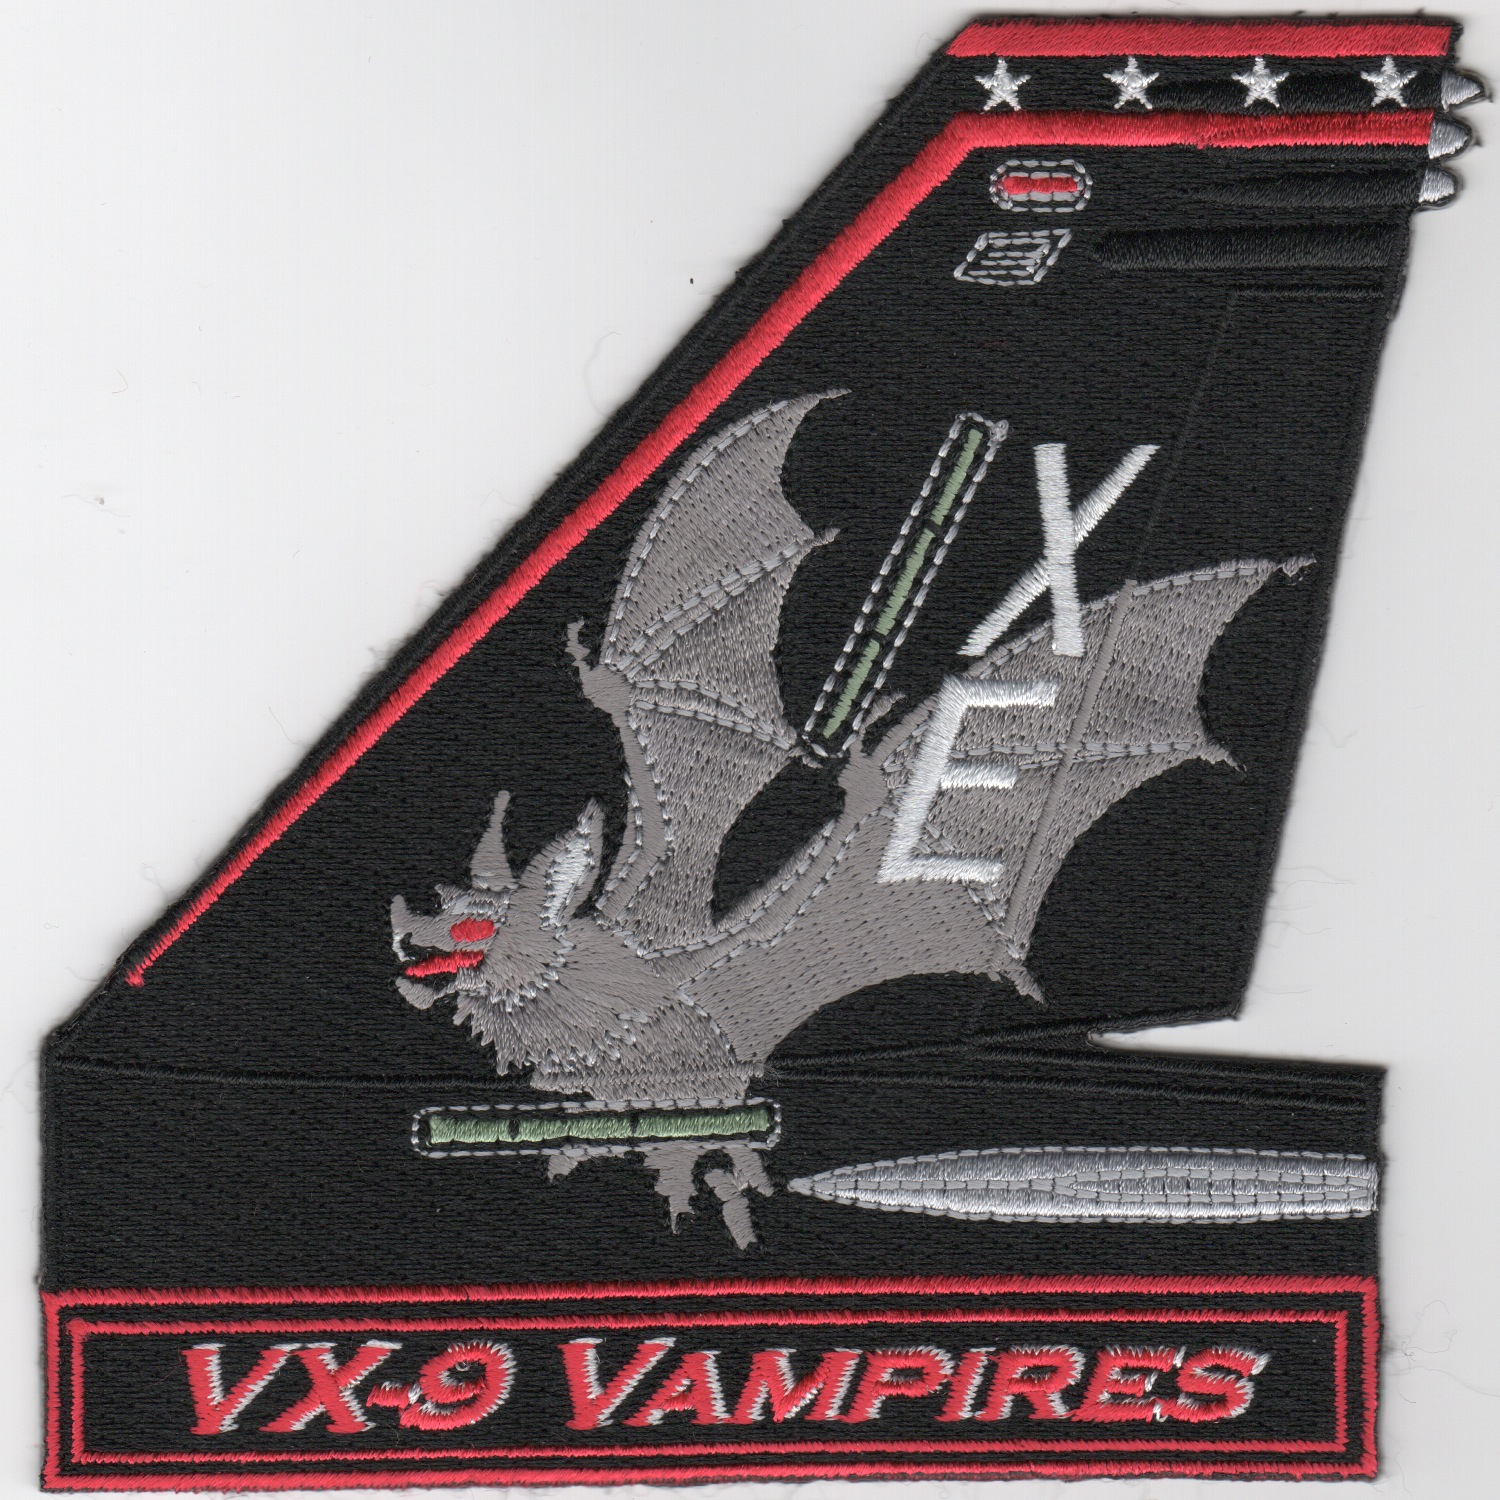 VX-9 F-18 TailFin (Gray Bat/Text)